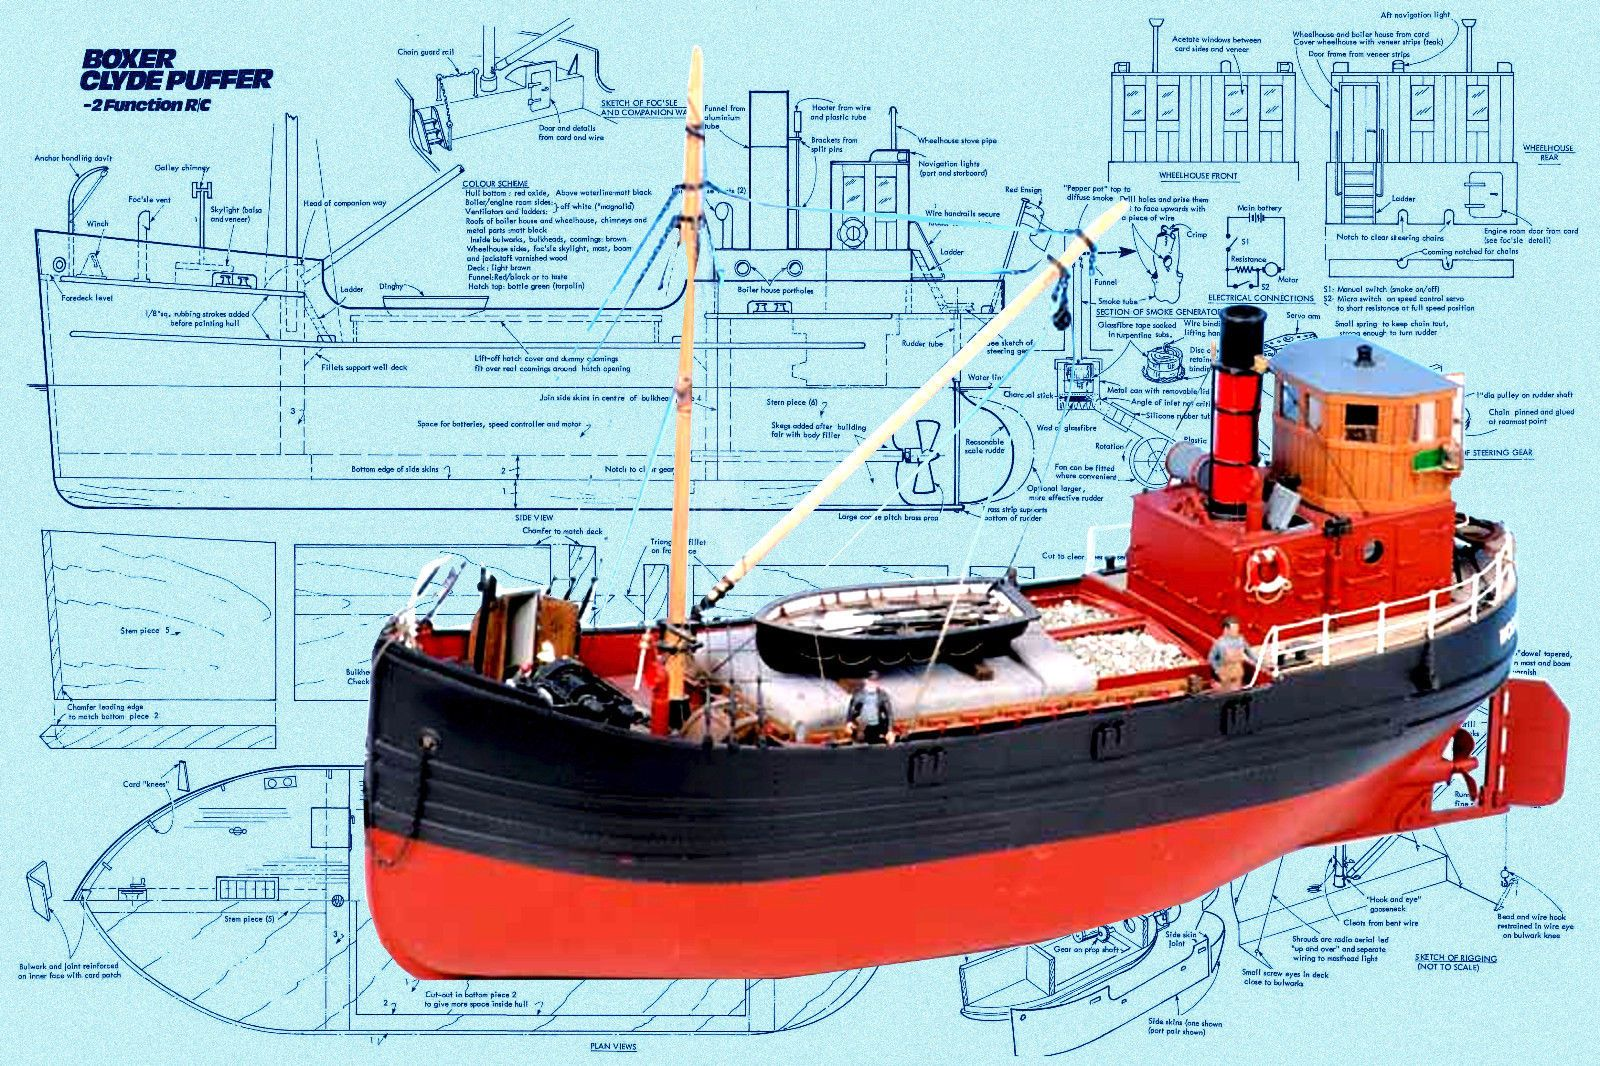 medium resolution of details about new full size printed plans notes semi scale clyde model boat radio control wiring